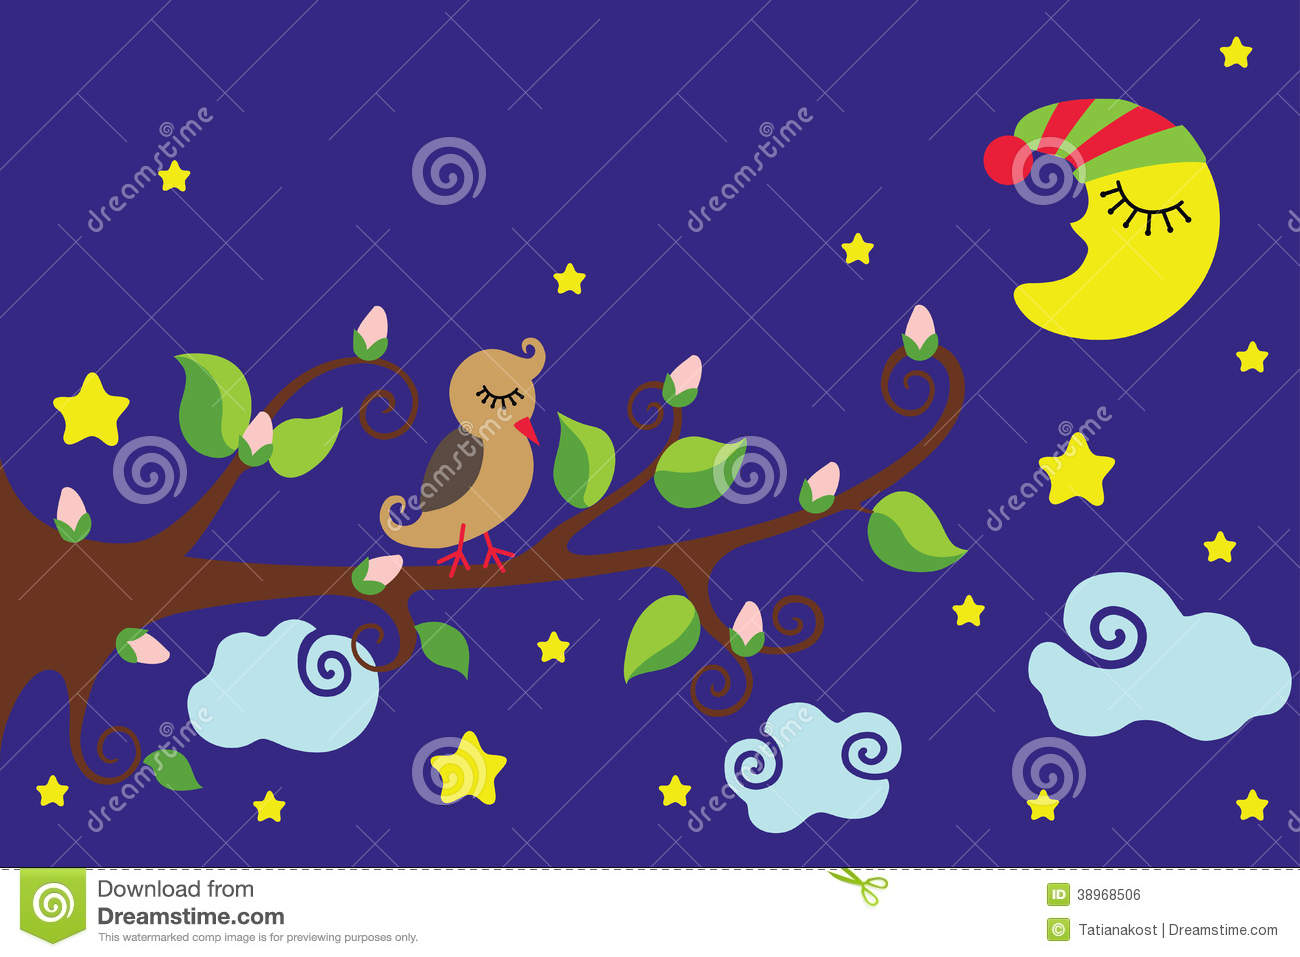 Bird On A Branch Nighttime Vector Cartoon Stock Vector Illustration Of Infantile Brown 38968506 Night owls childish cartoon characters sitting on tree branch, flat vector illustration. dreamstime com